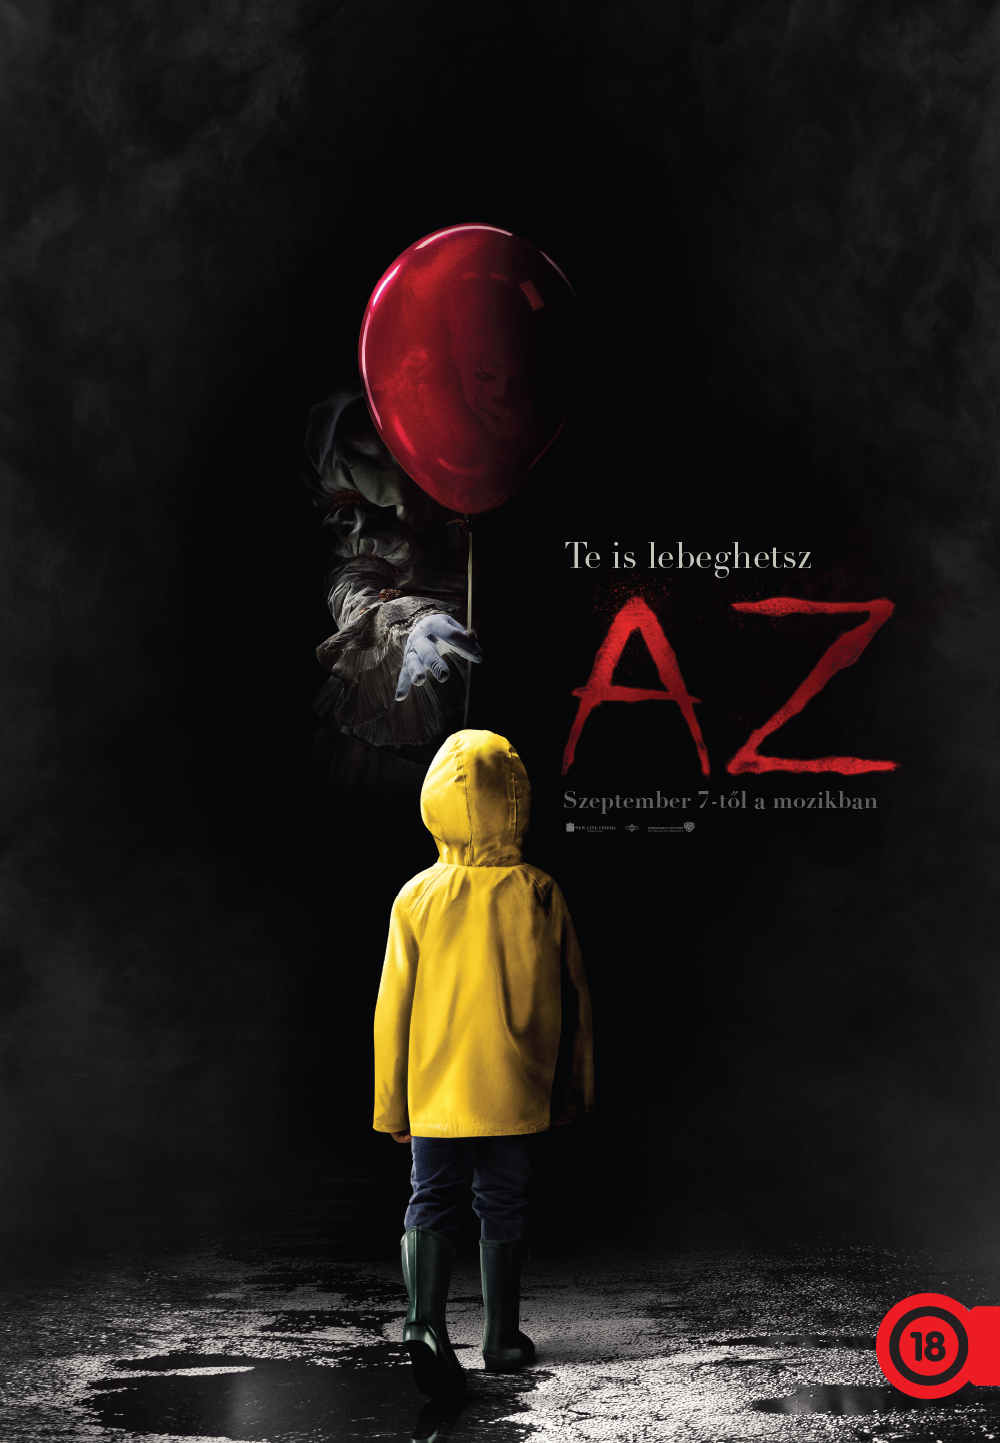 It.2017.1080p.CEE.Blu-ray.AVC.TrueHD.7.1-HyperX